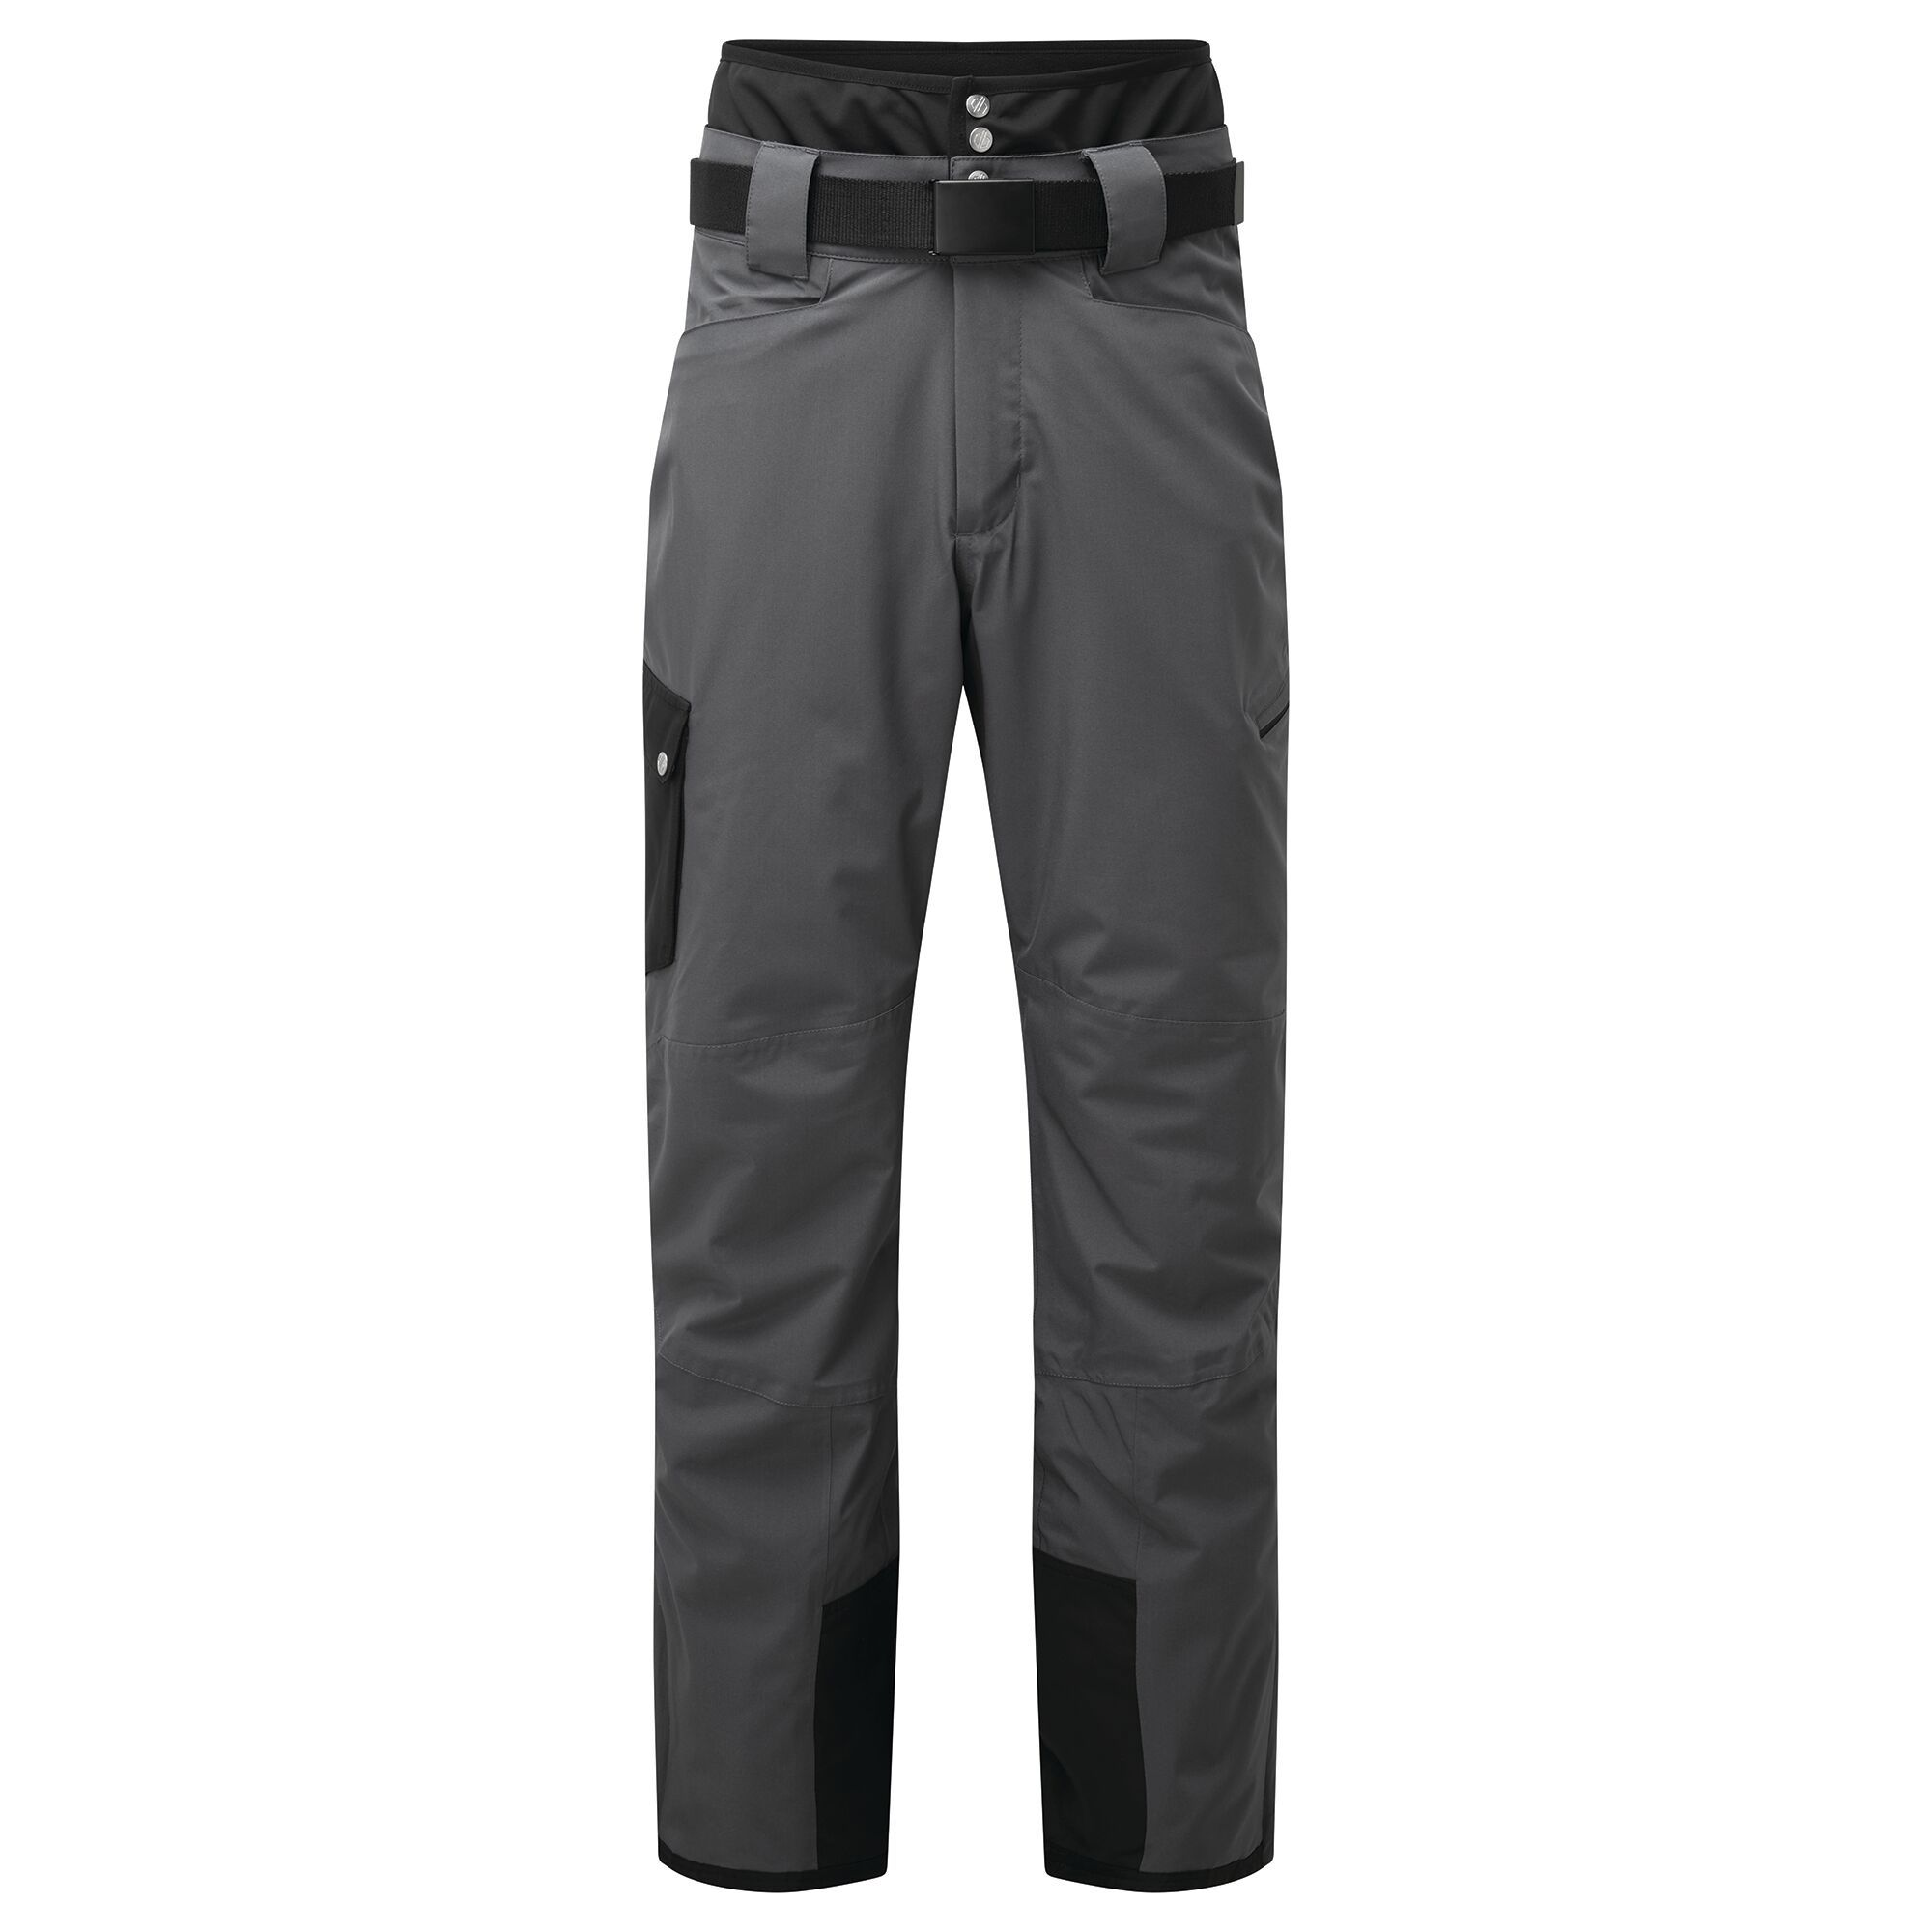 Insulated ski trousers